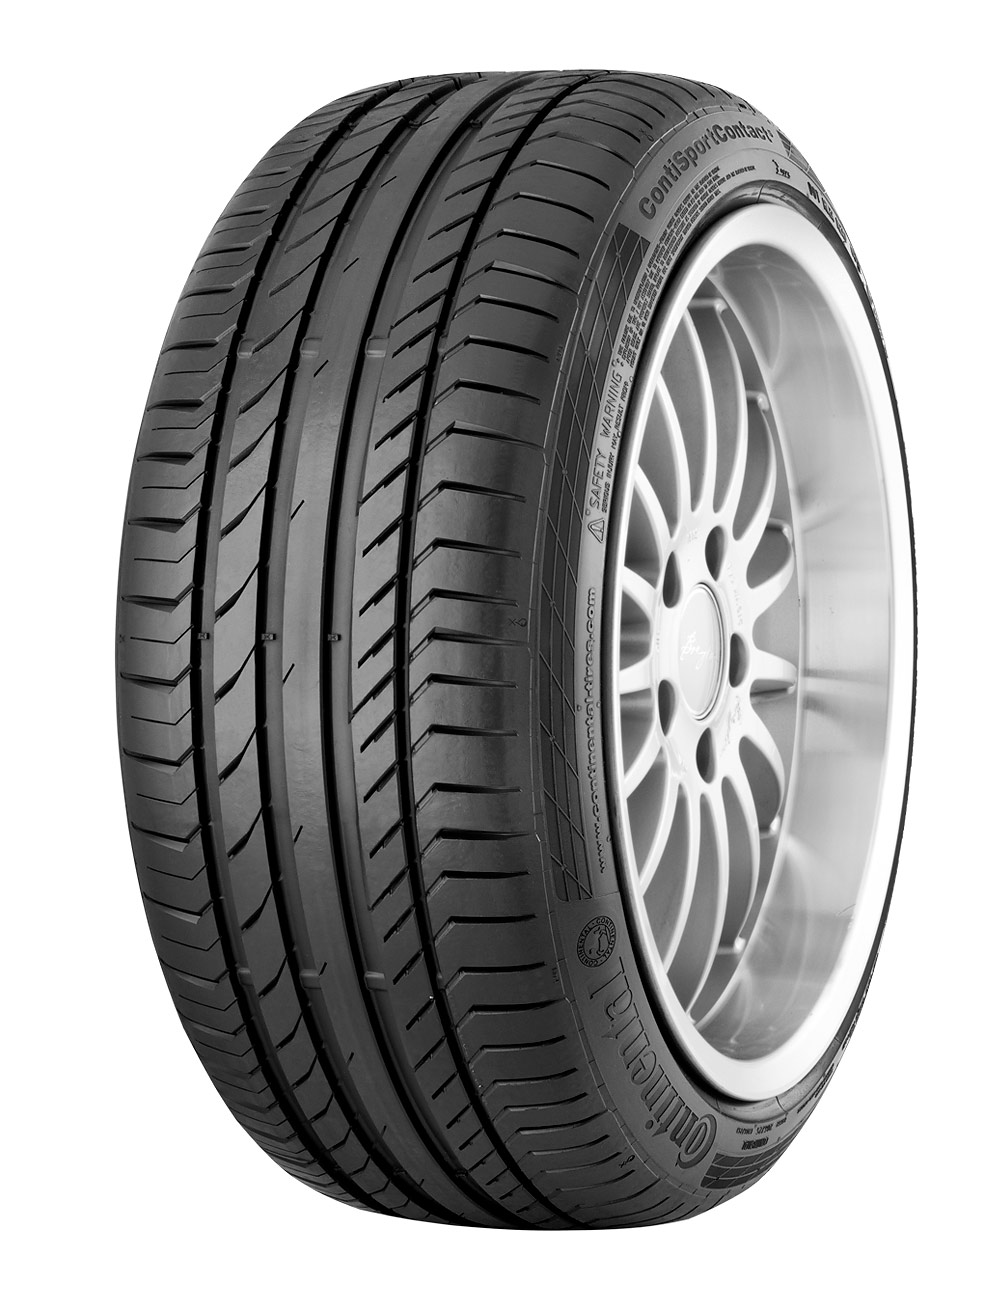 Anvelopa vara CONTINENTAL SPORT CONTACT 5 235/50 R17 96W